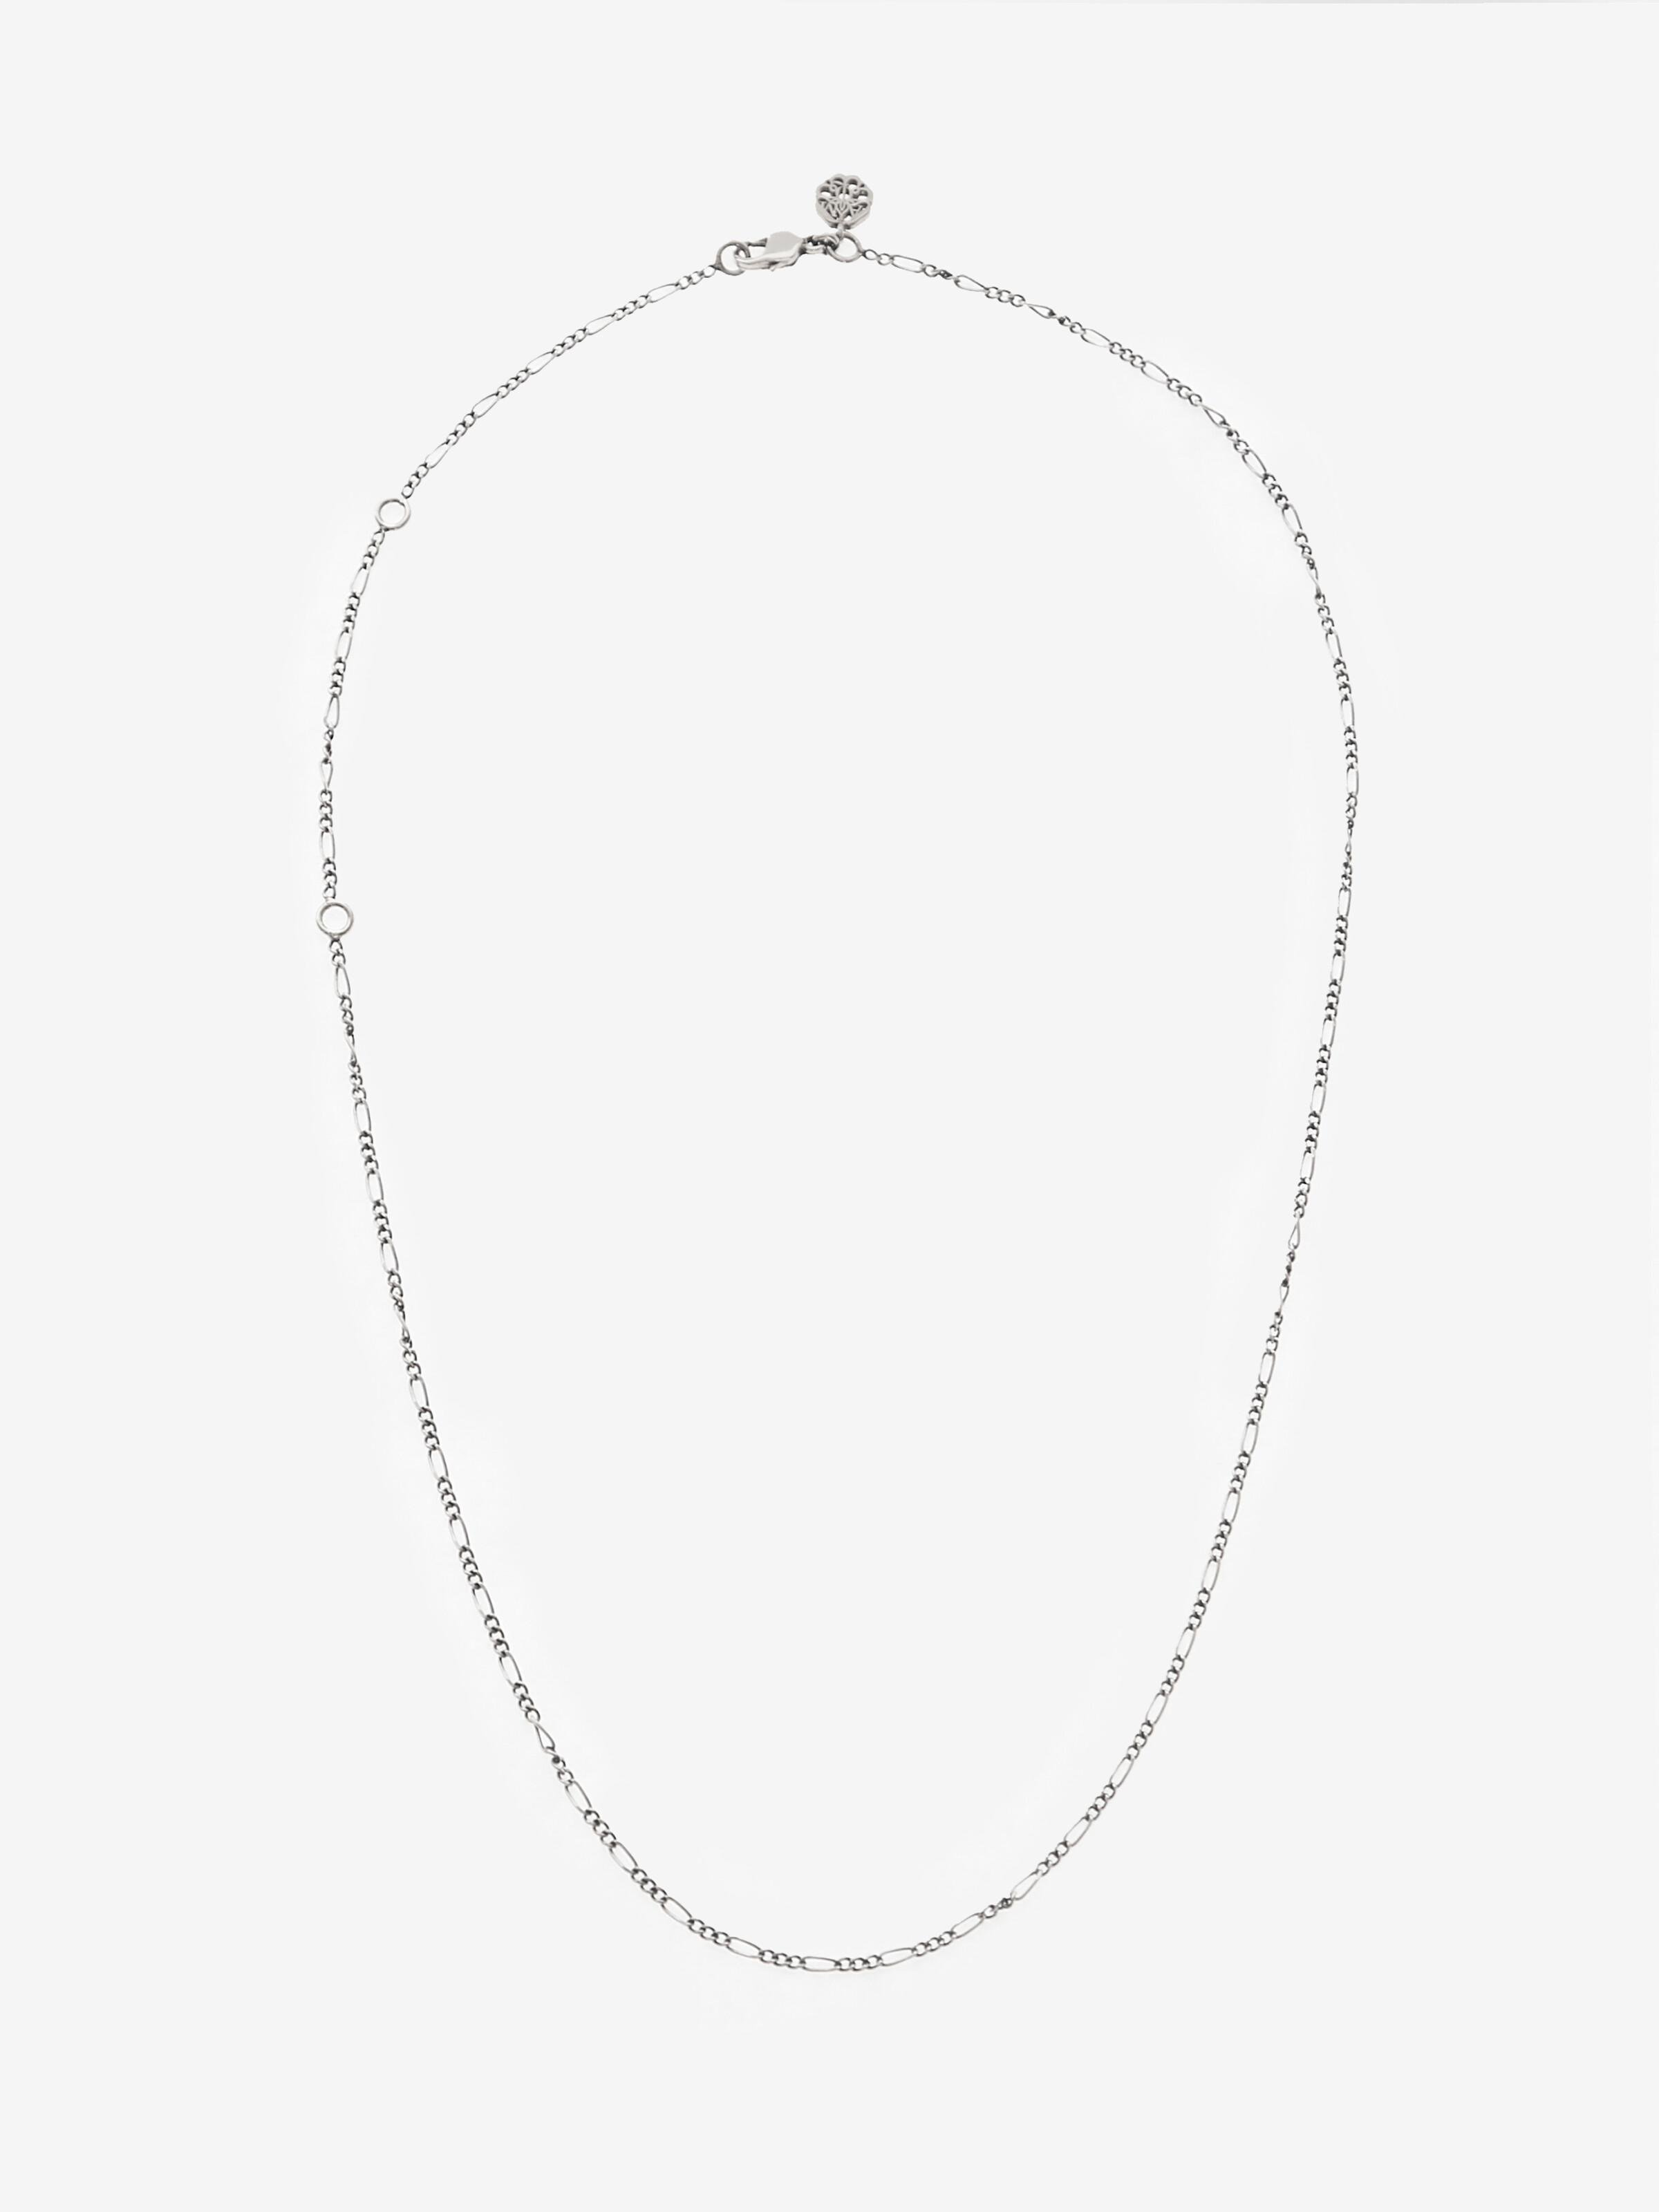 Antique silver-finished Chain